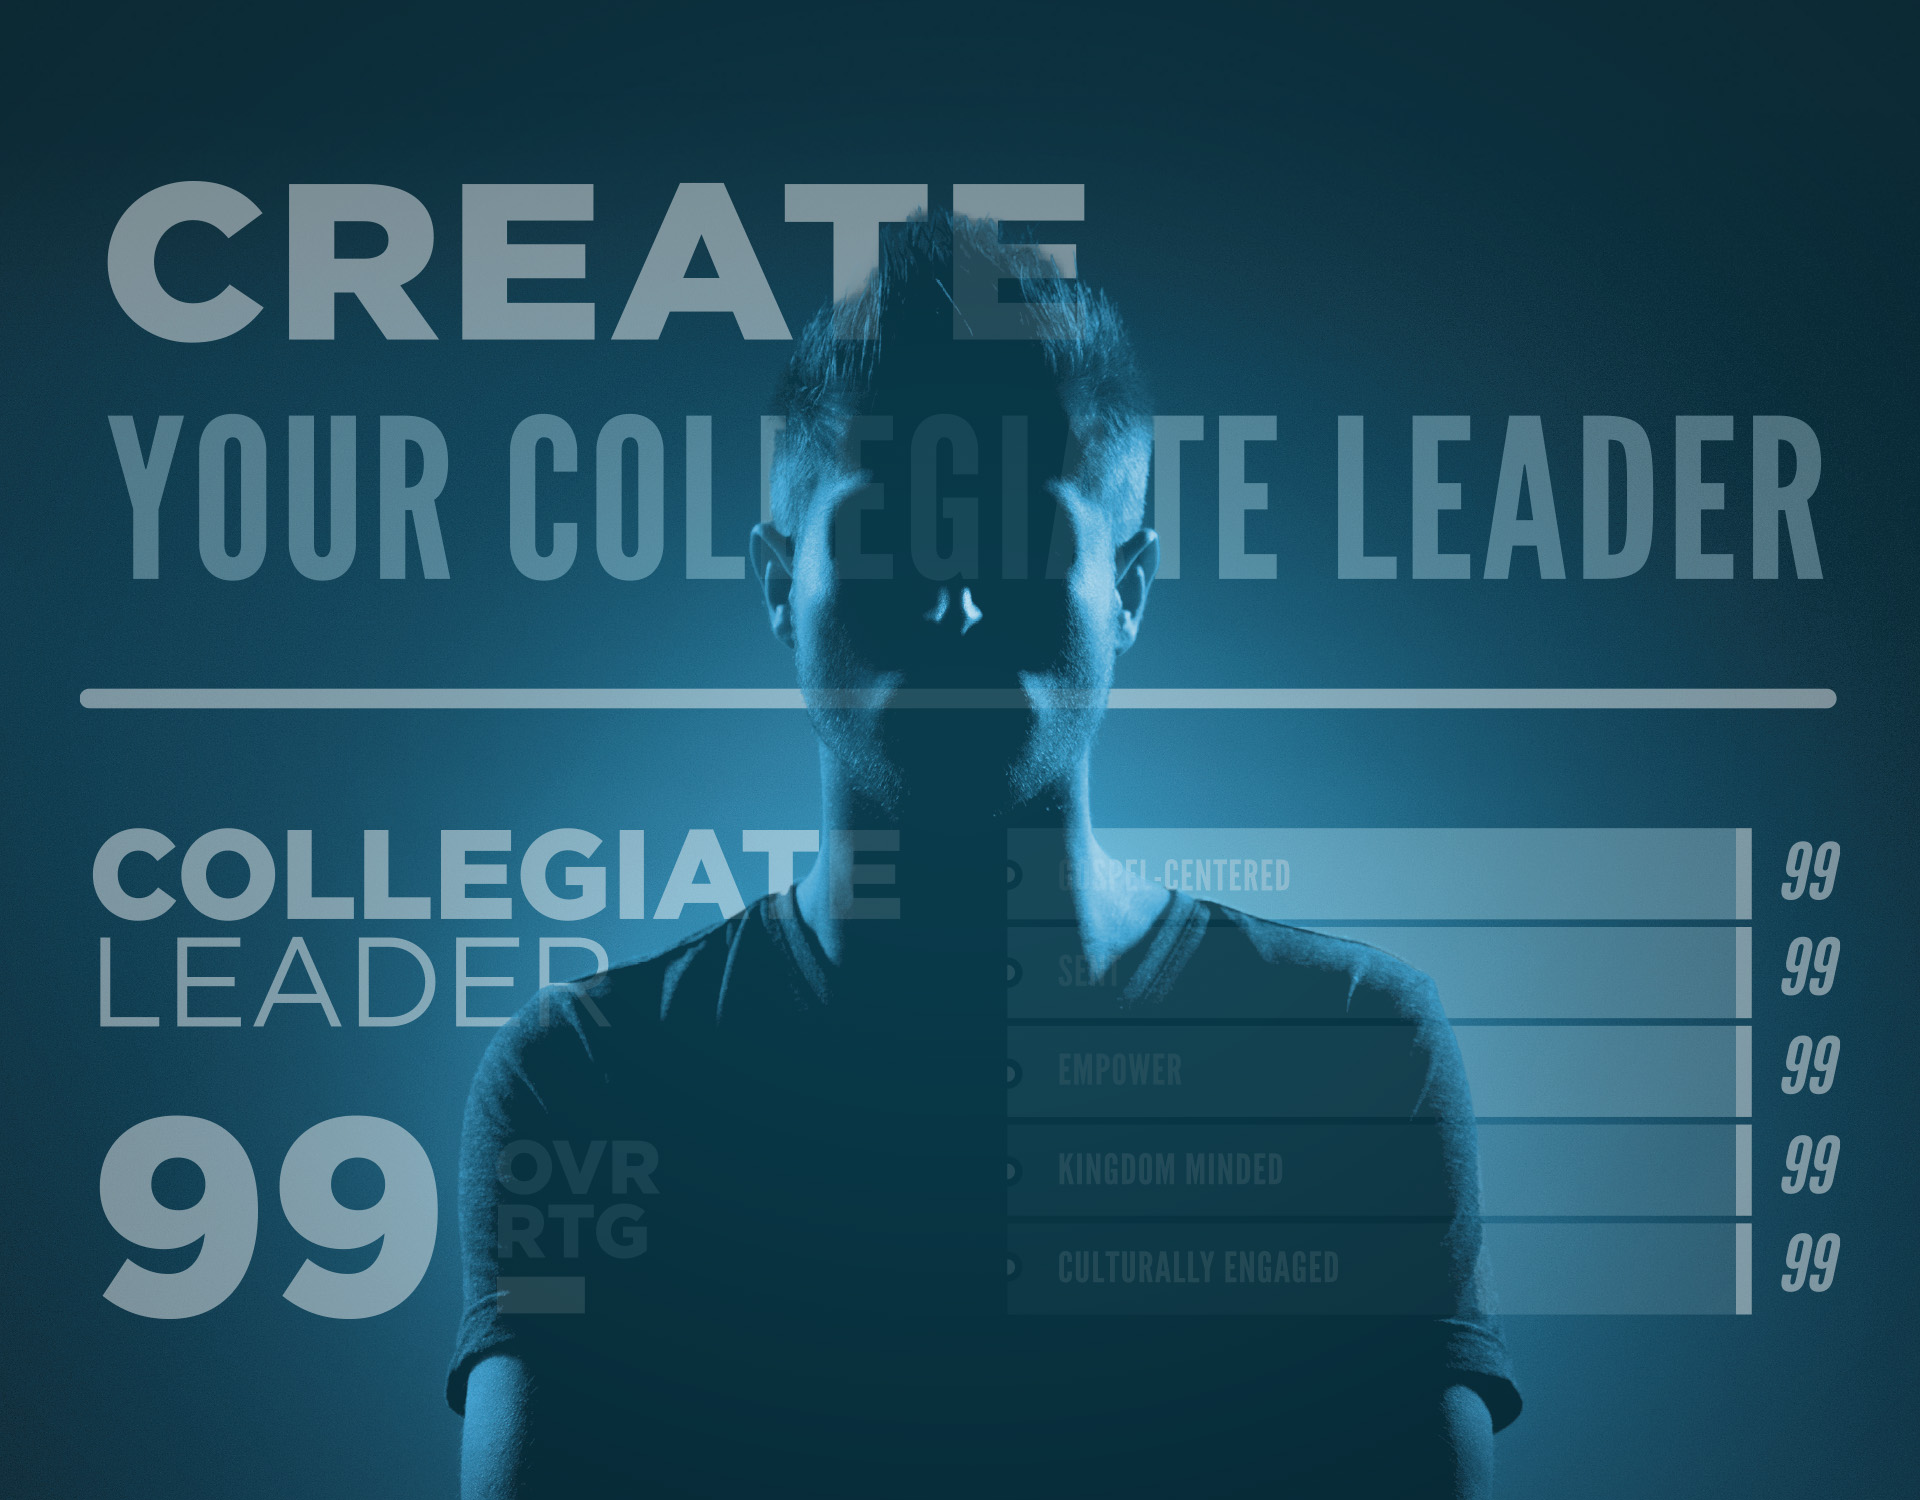 5 Values of a Great College Leader